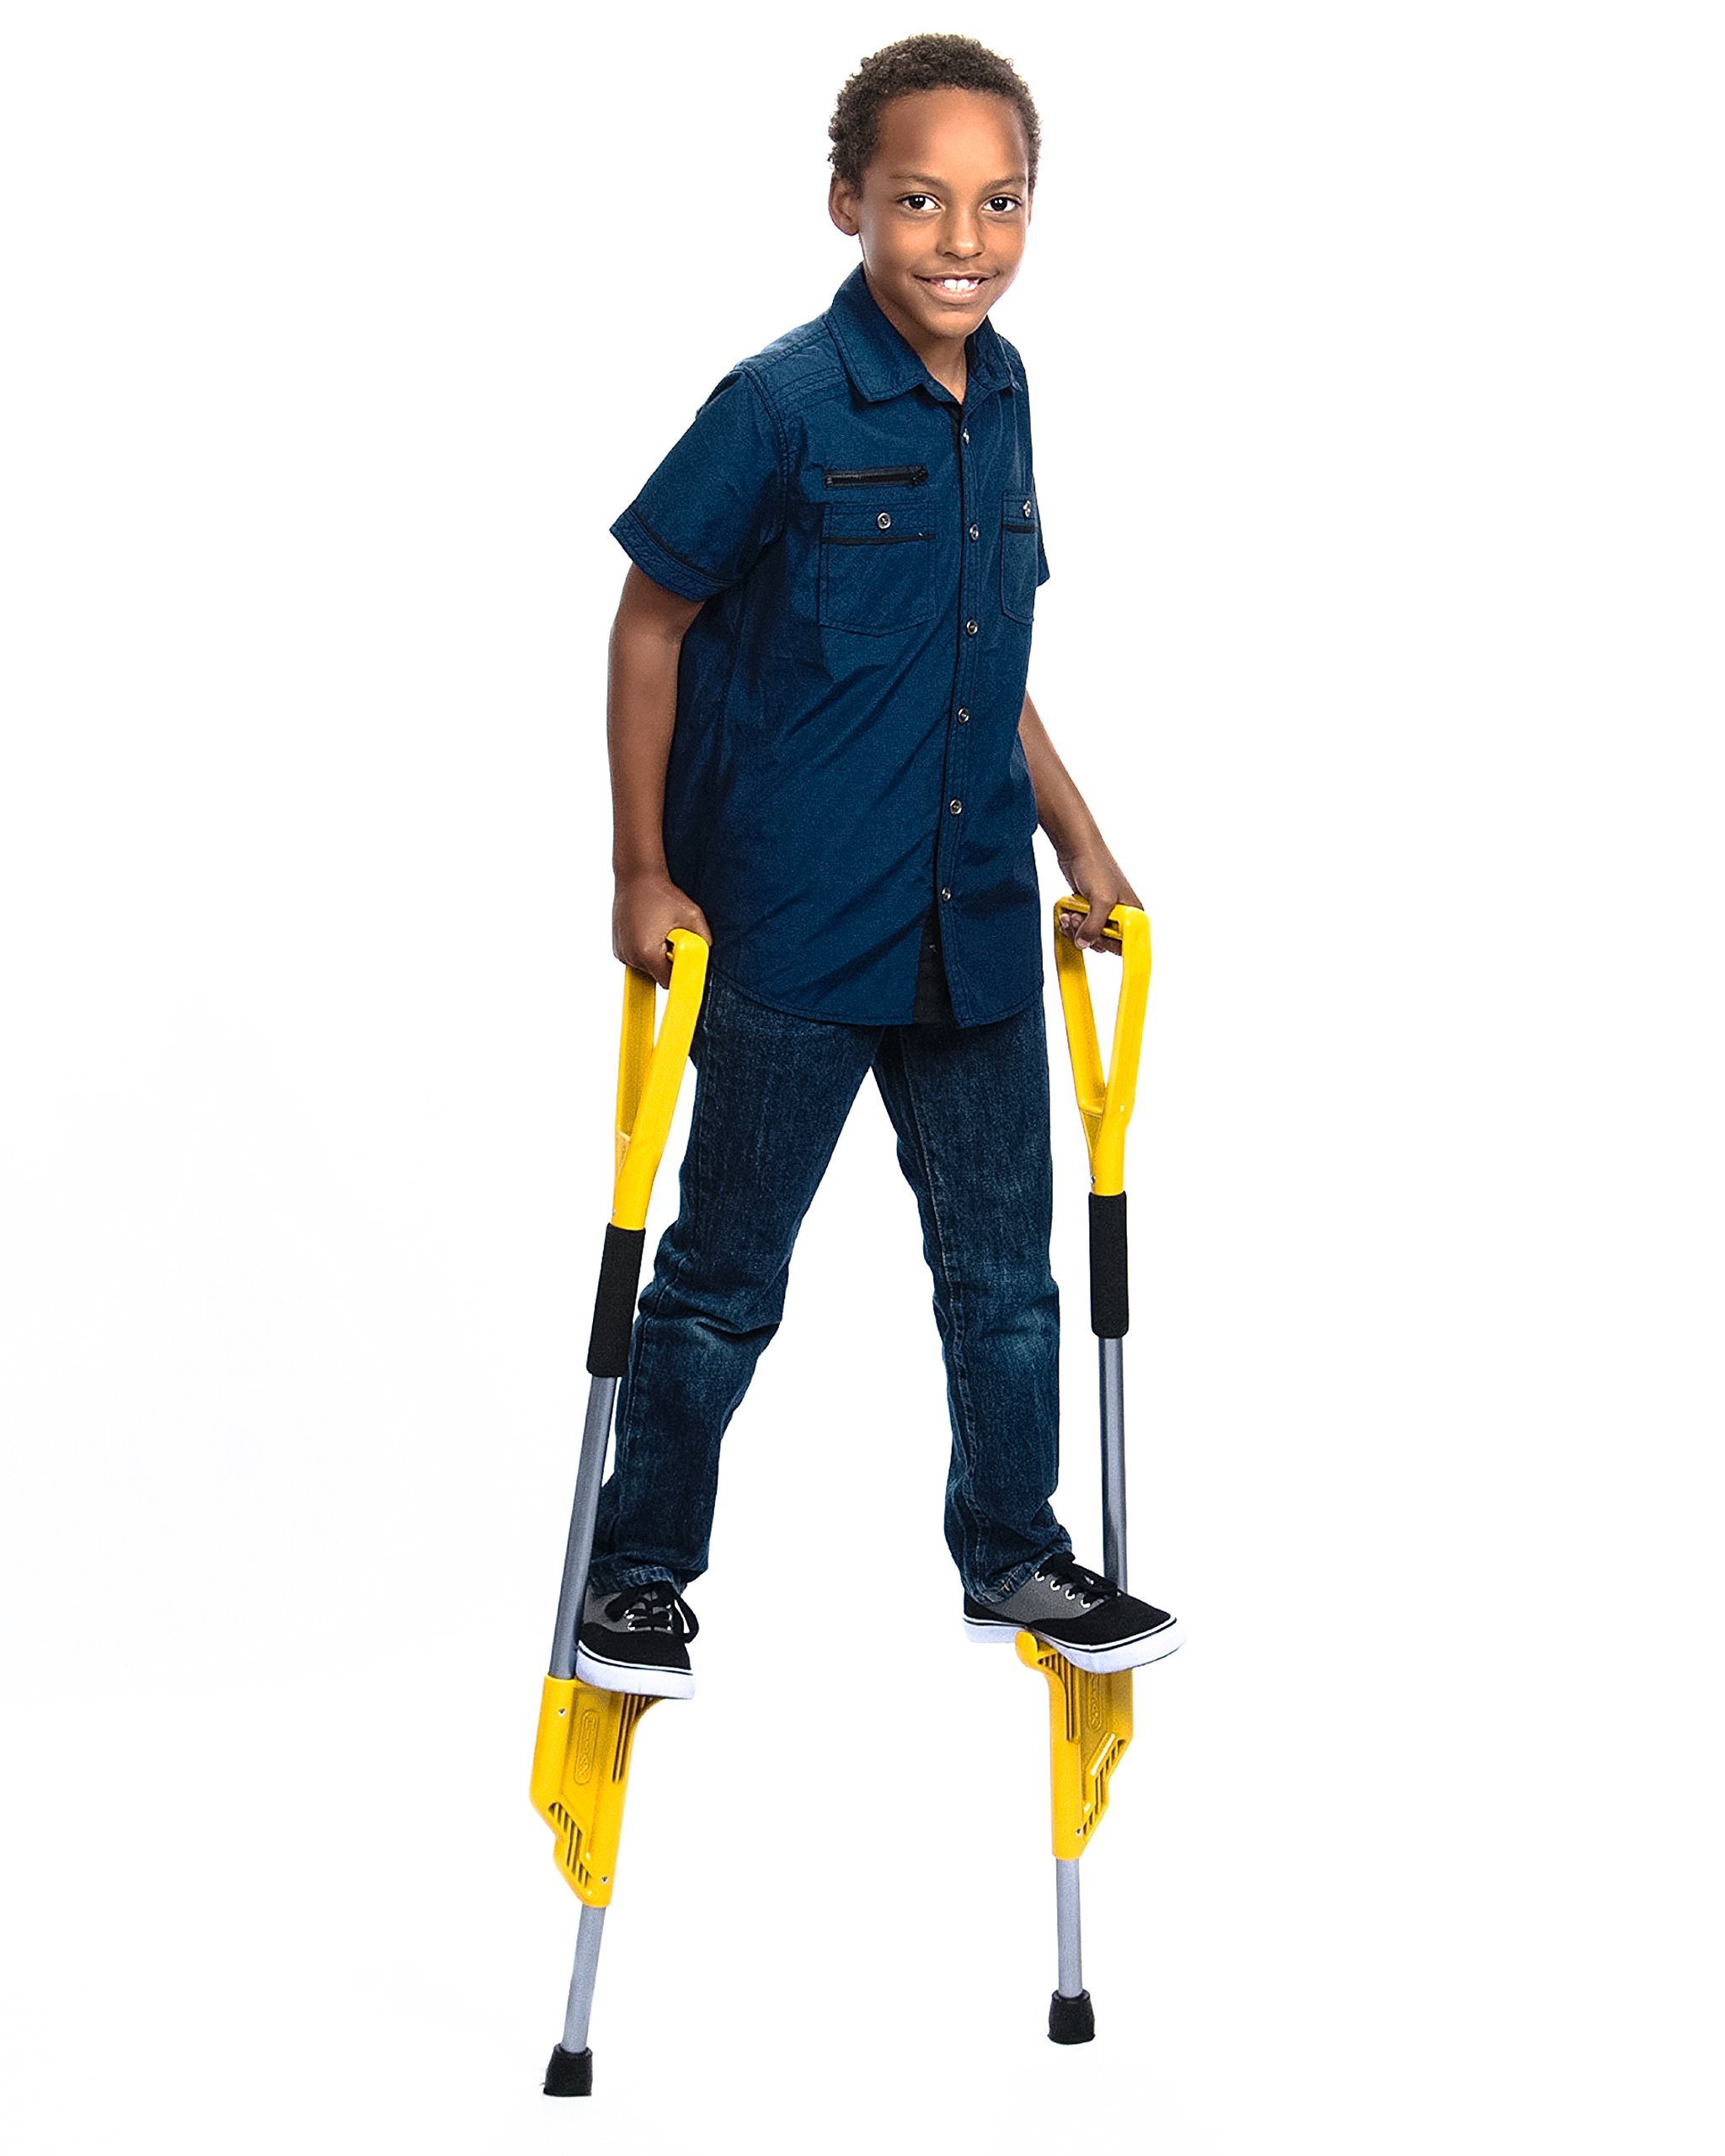 Hijax Standard Size American Stilts for Active Kids (Platinum)